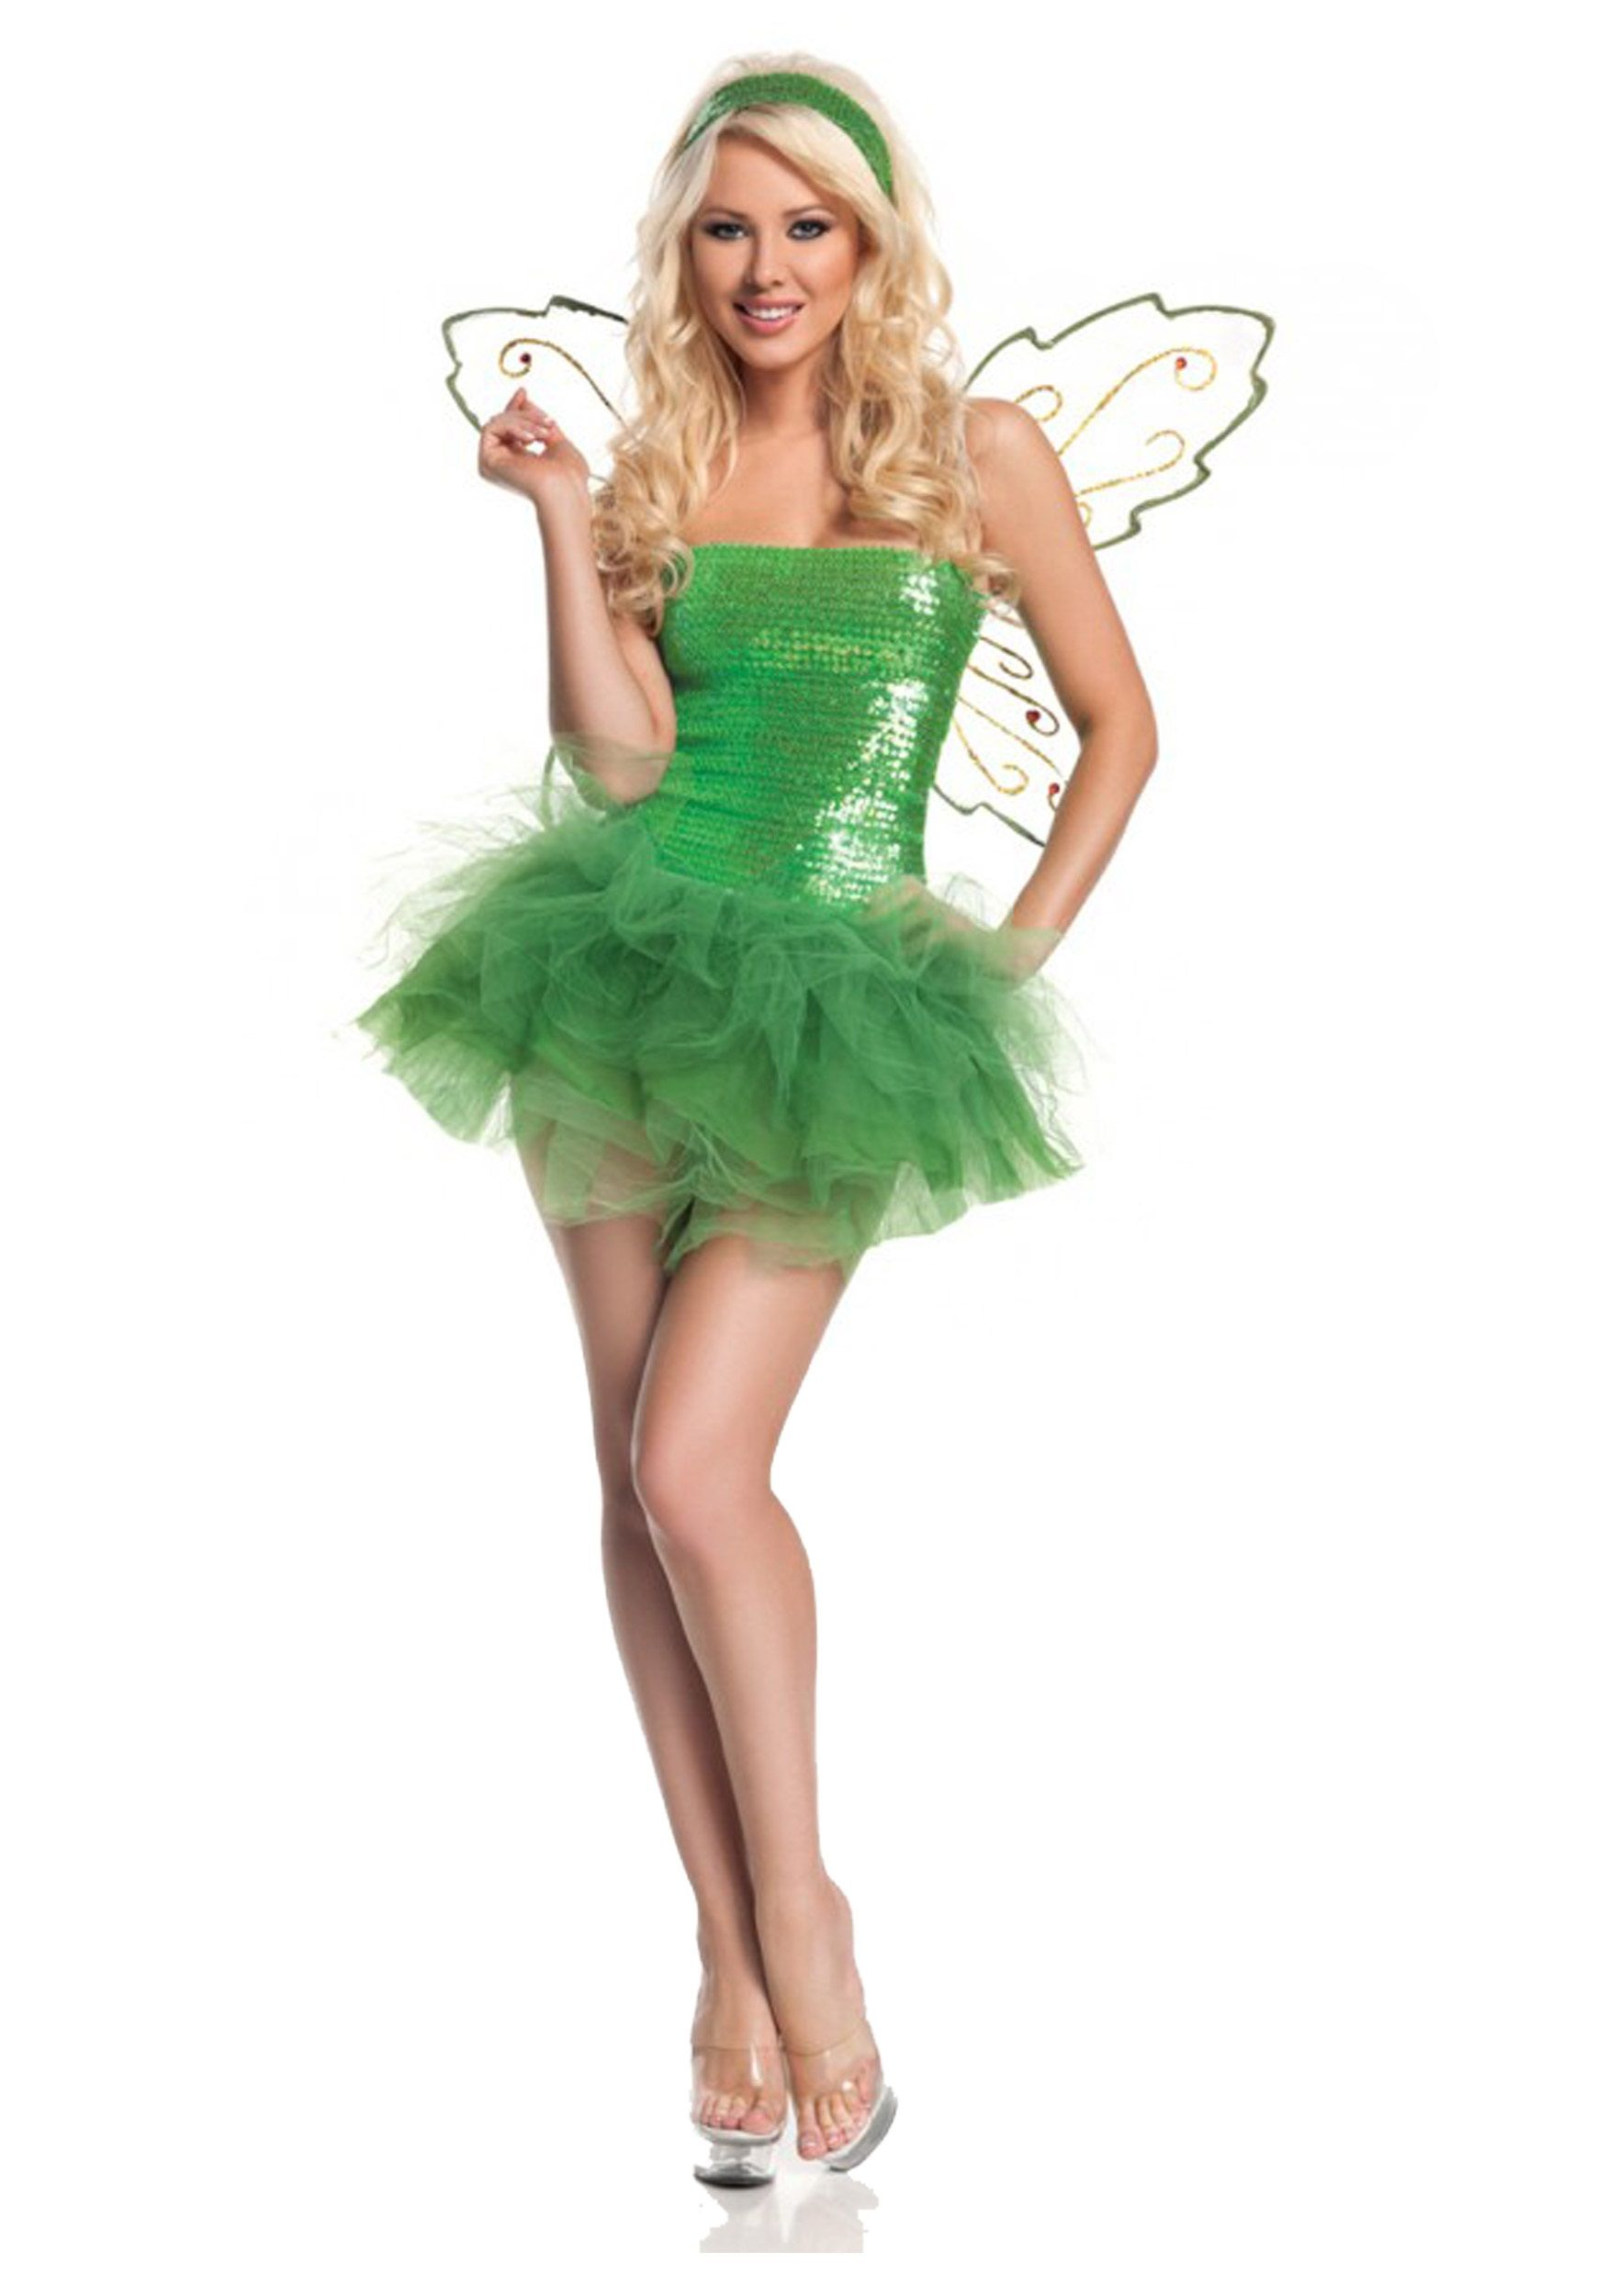 Tips To Help You Fit Into Your Sexy Halloween Costume  sc 1 st  Pinterest & Tips To Help You Fit Into Your Sexy Halloween Costume | Halloween ...